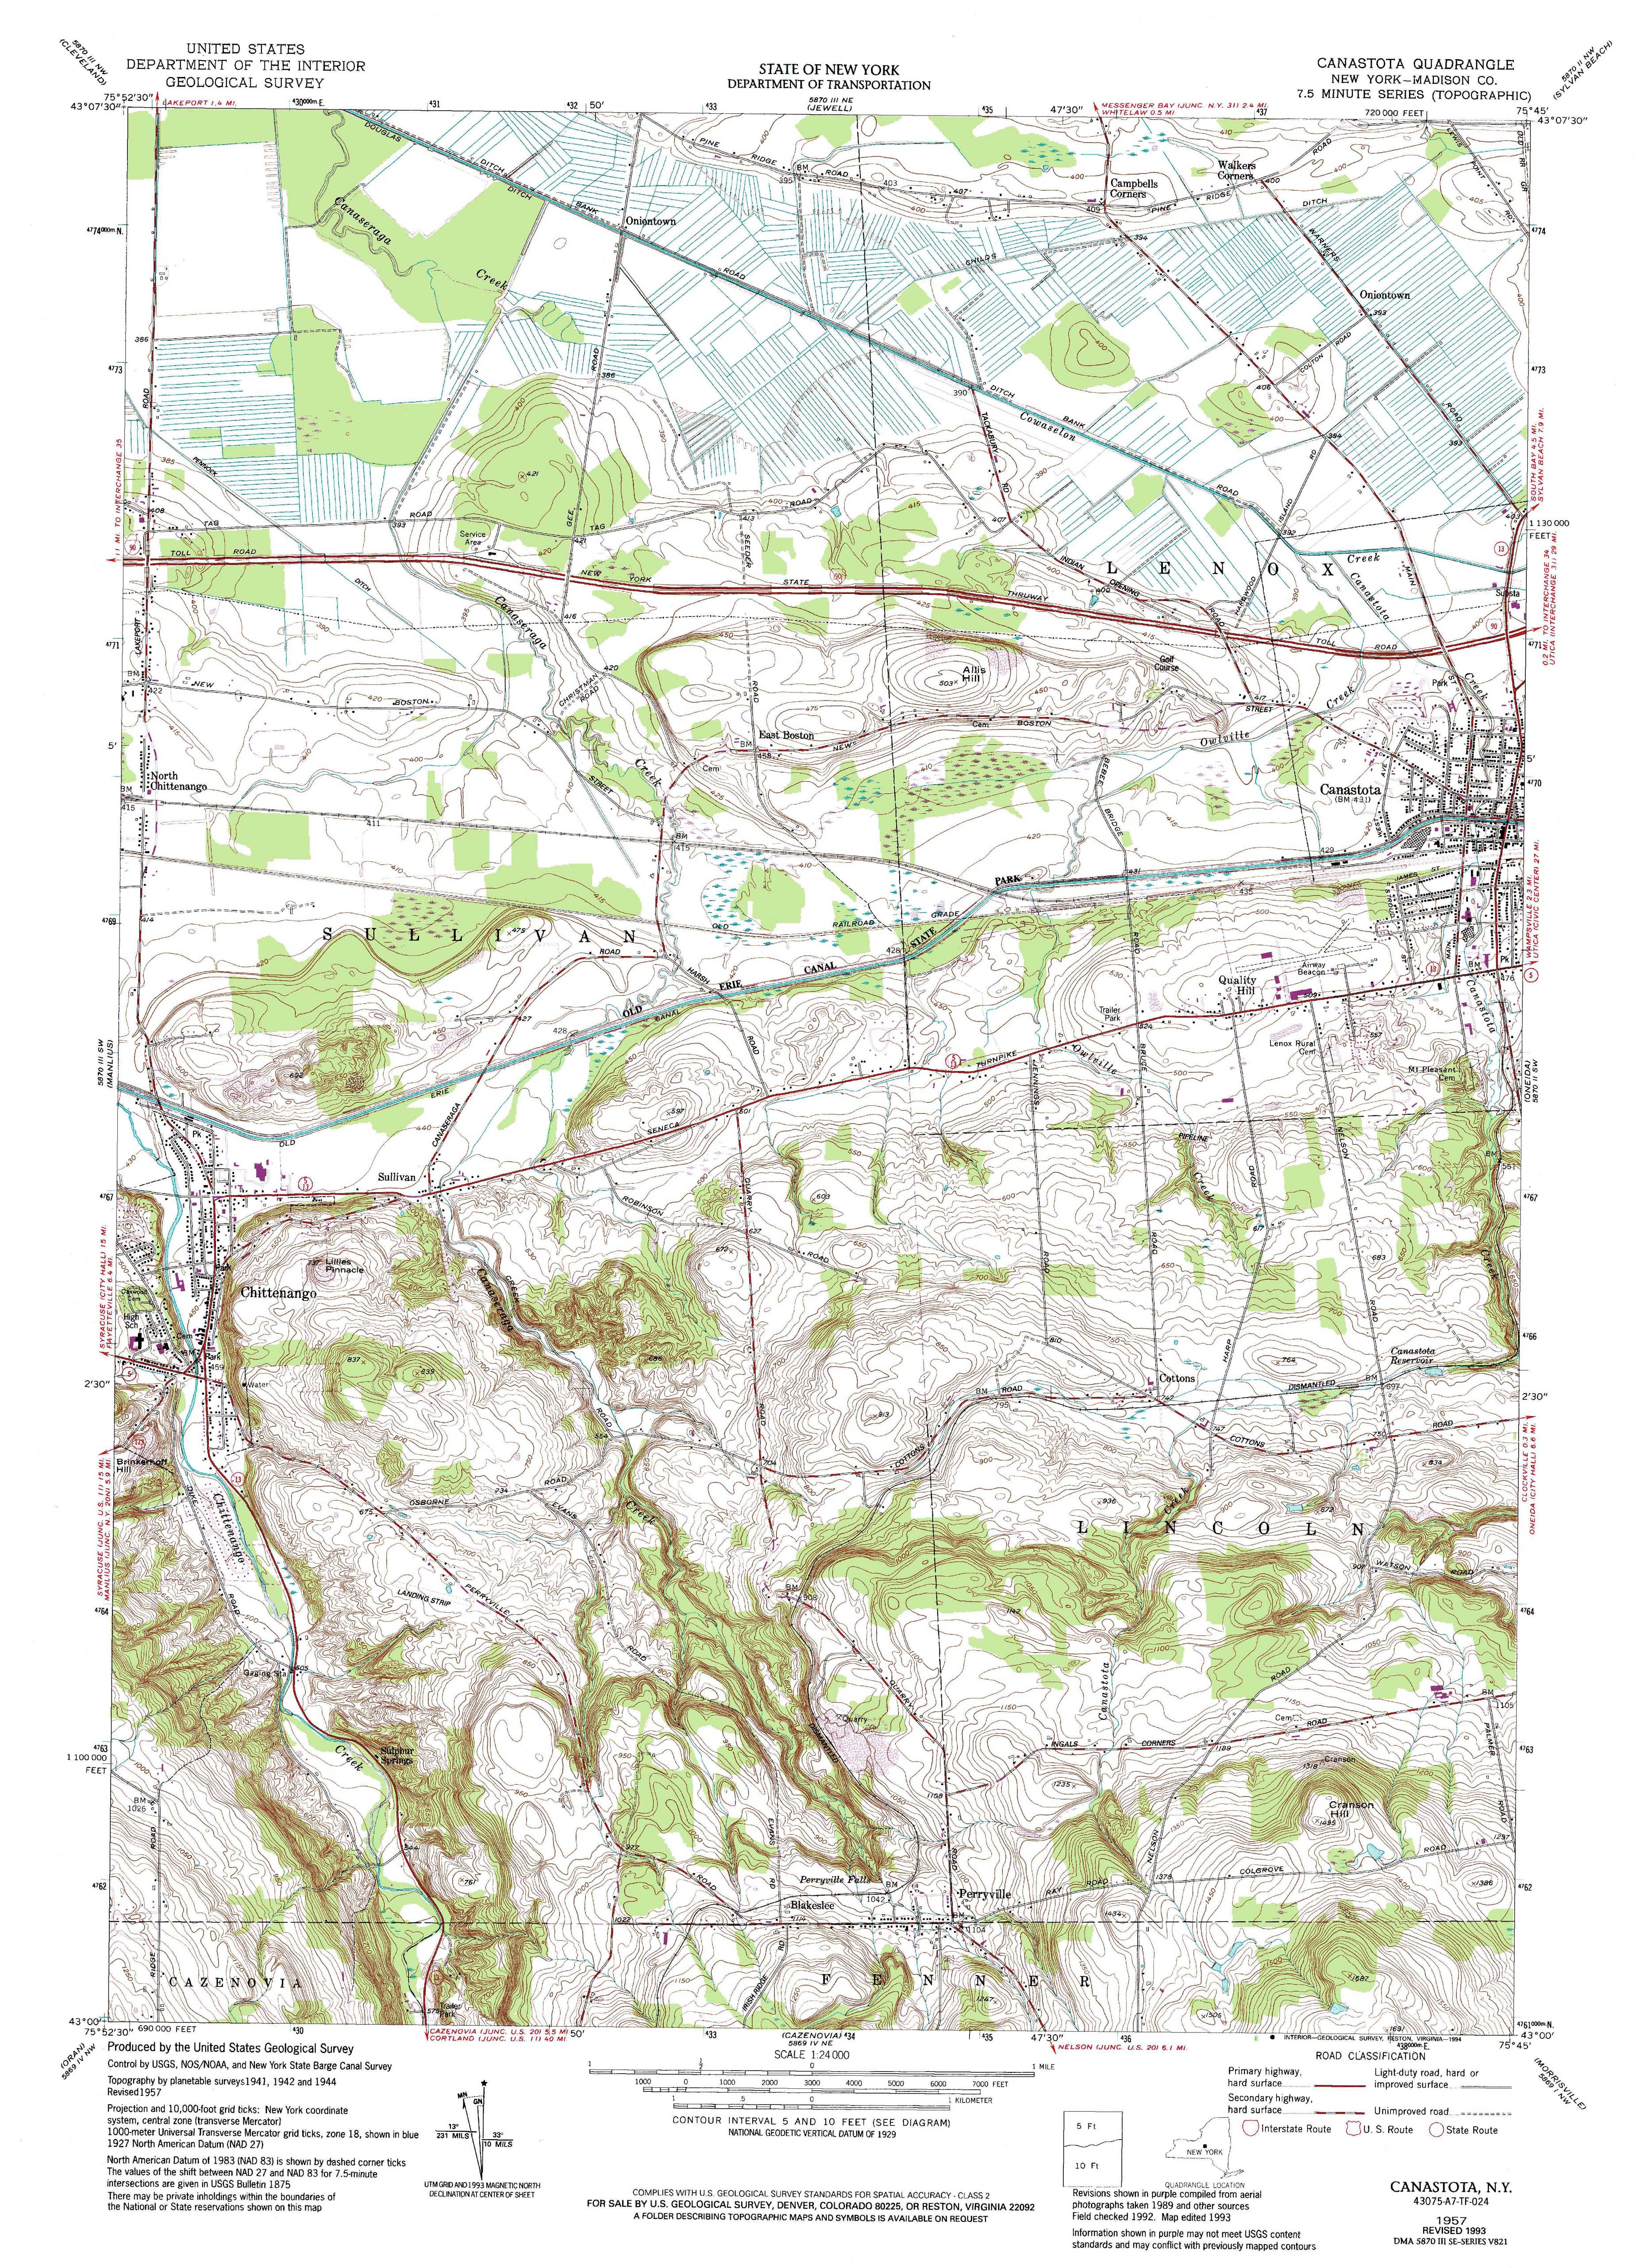 New York Topo Maps Minute Topographic Maps Scale - Us geological survey topographic maps for sale